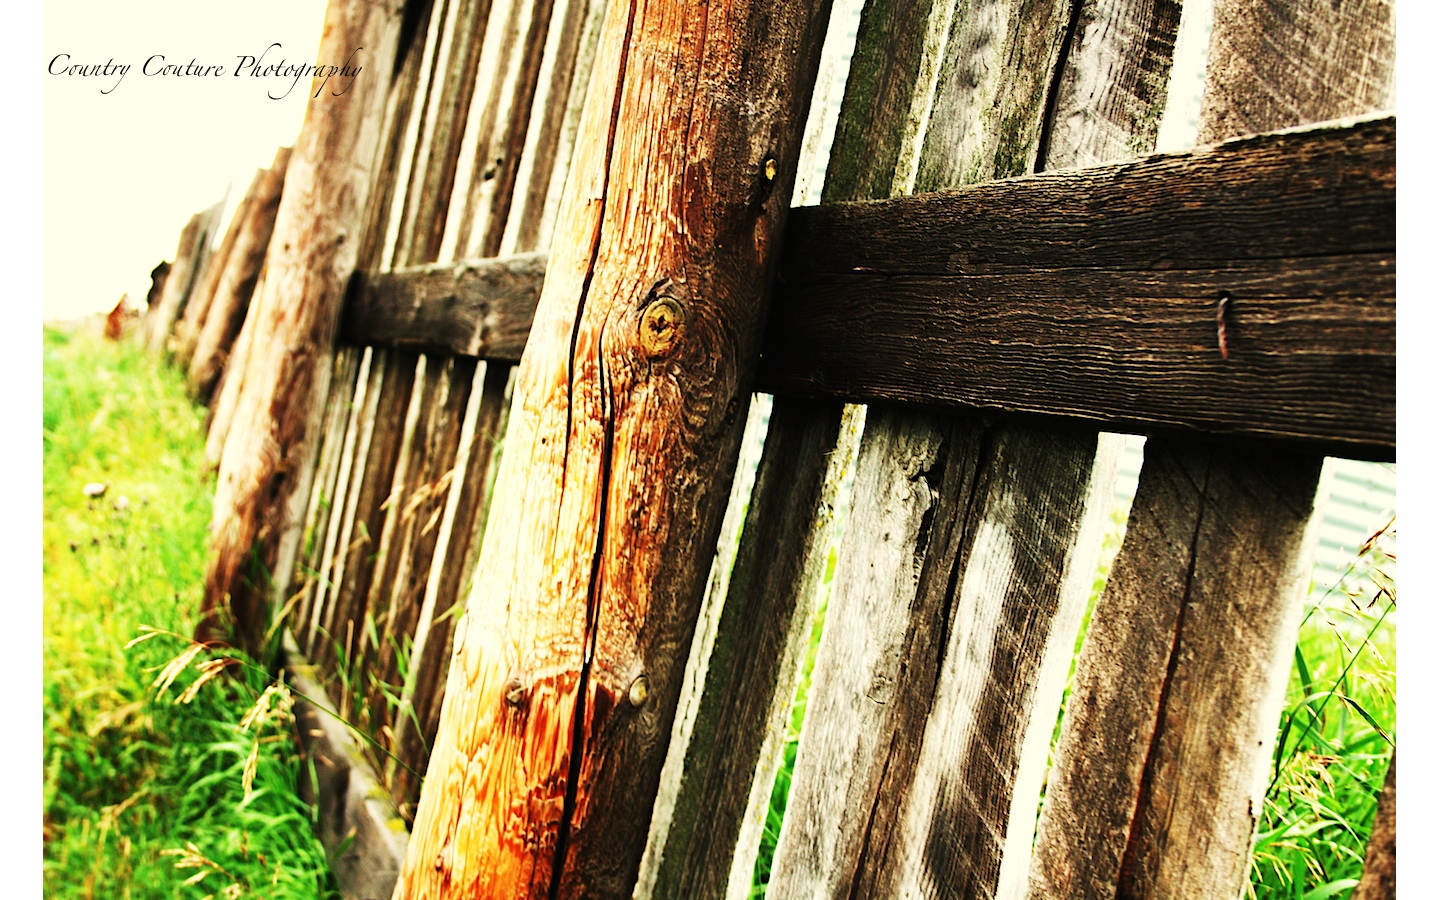 Leaning Post